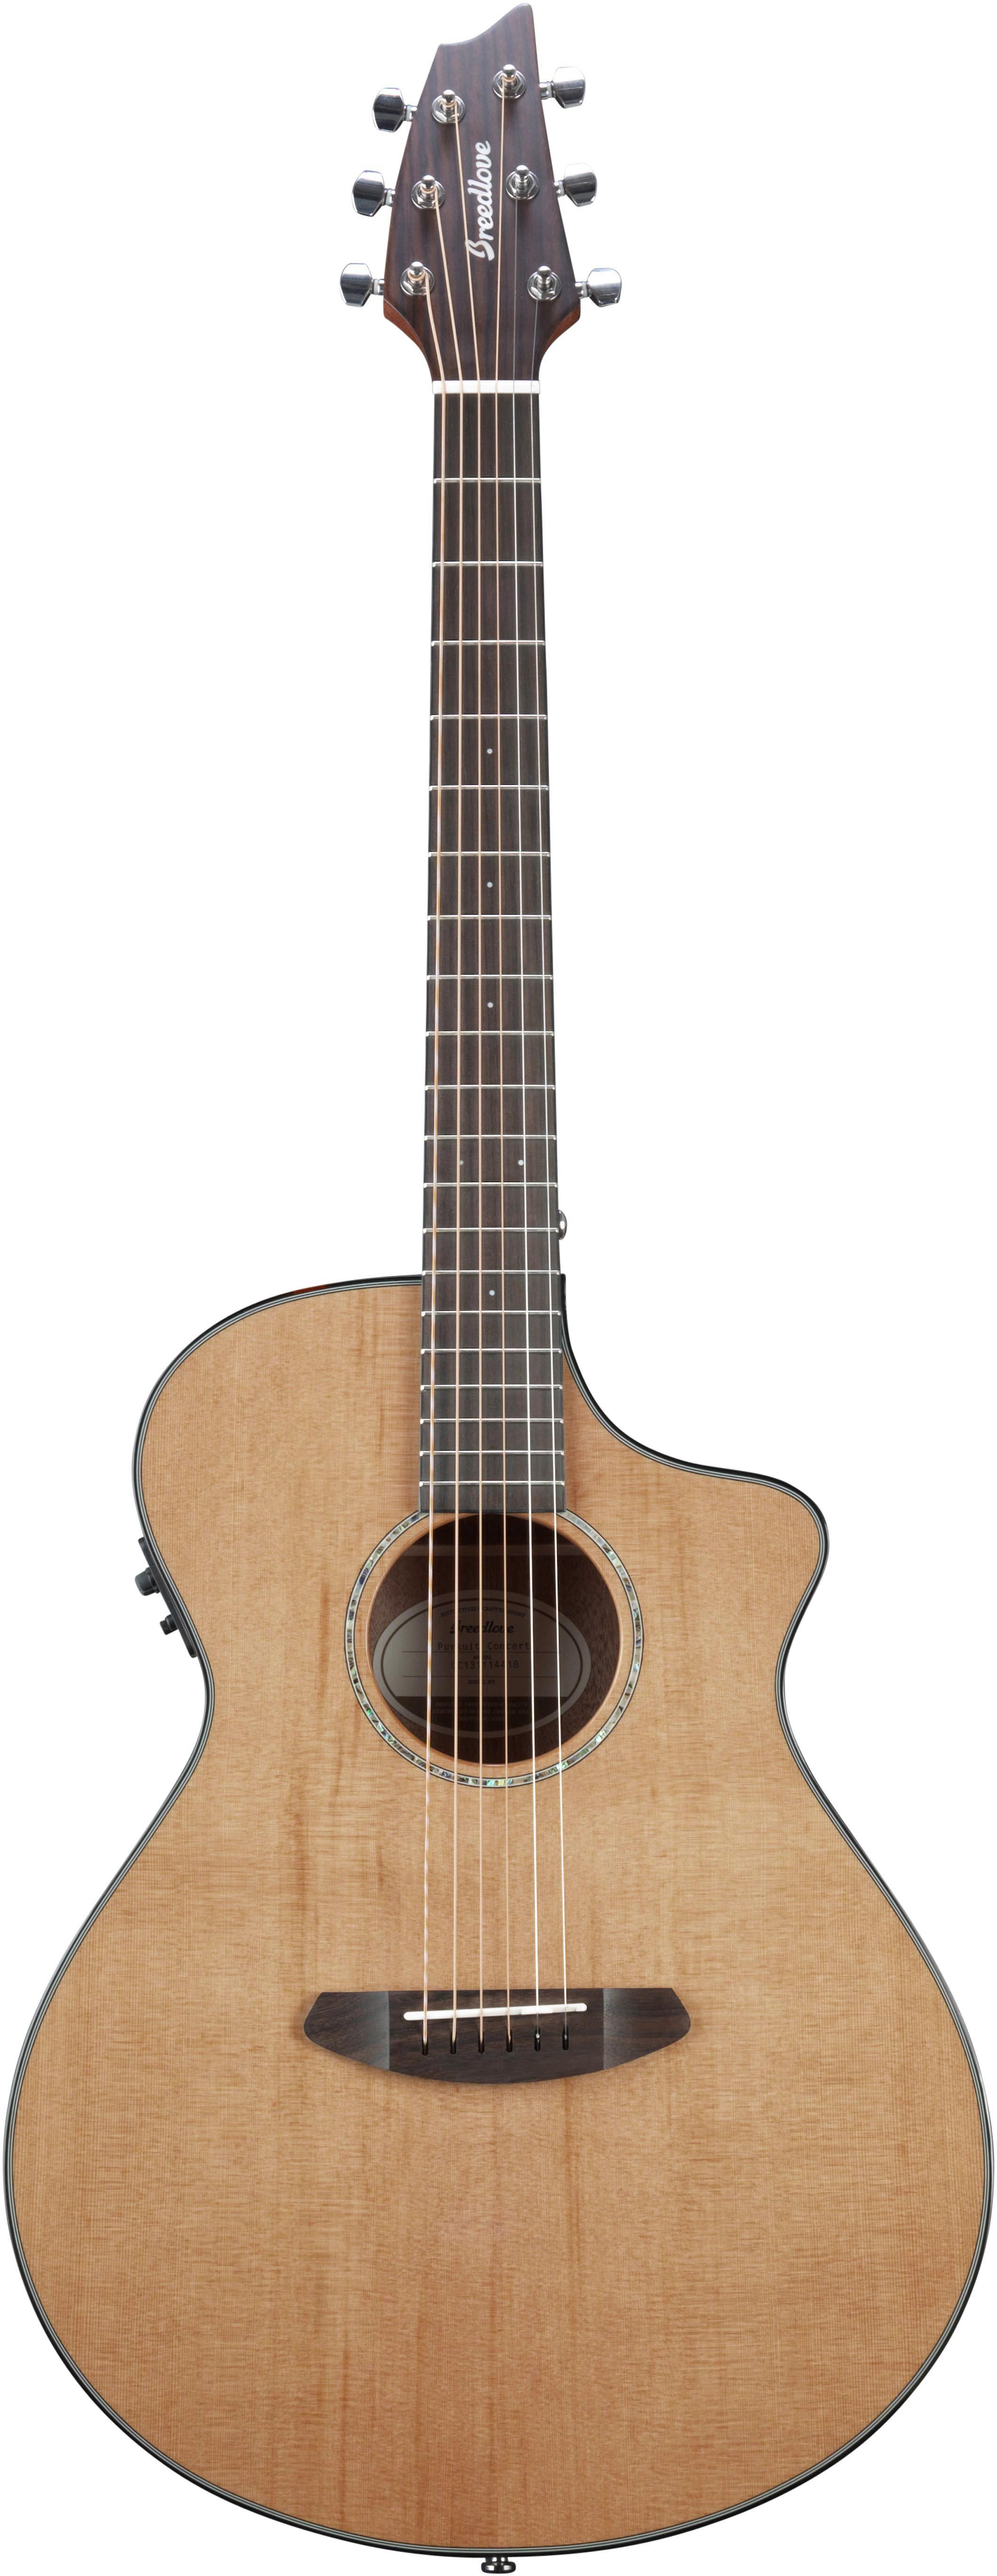 Breedlove Pursuit Concert CE - Red Cedar/Mahogany